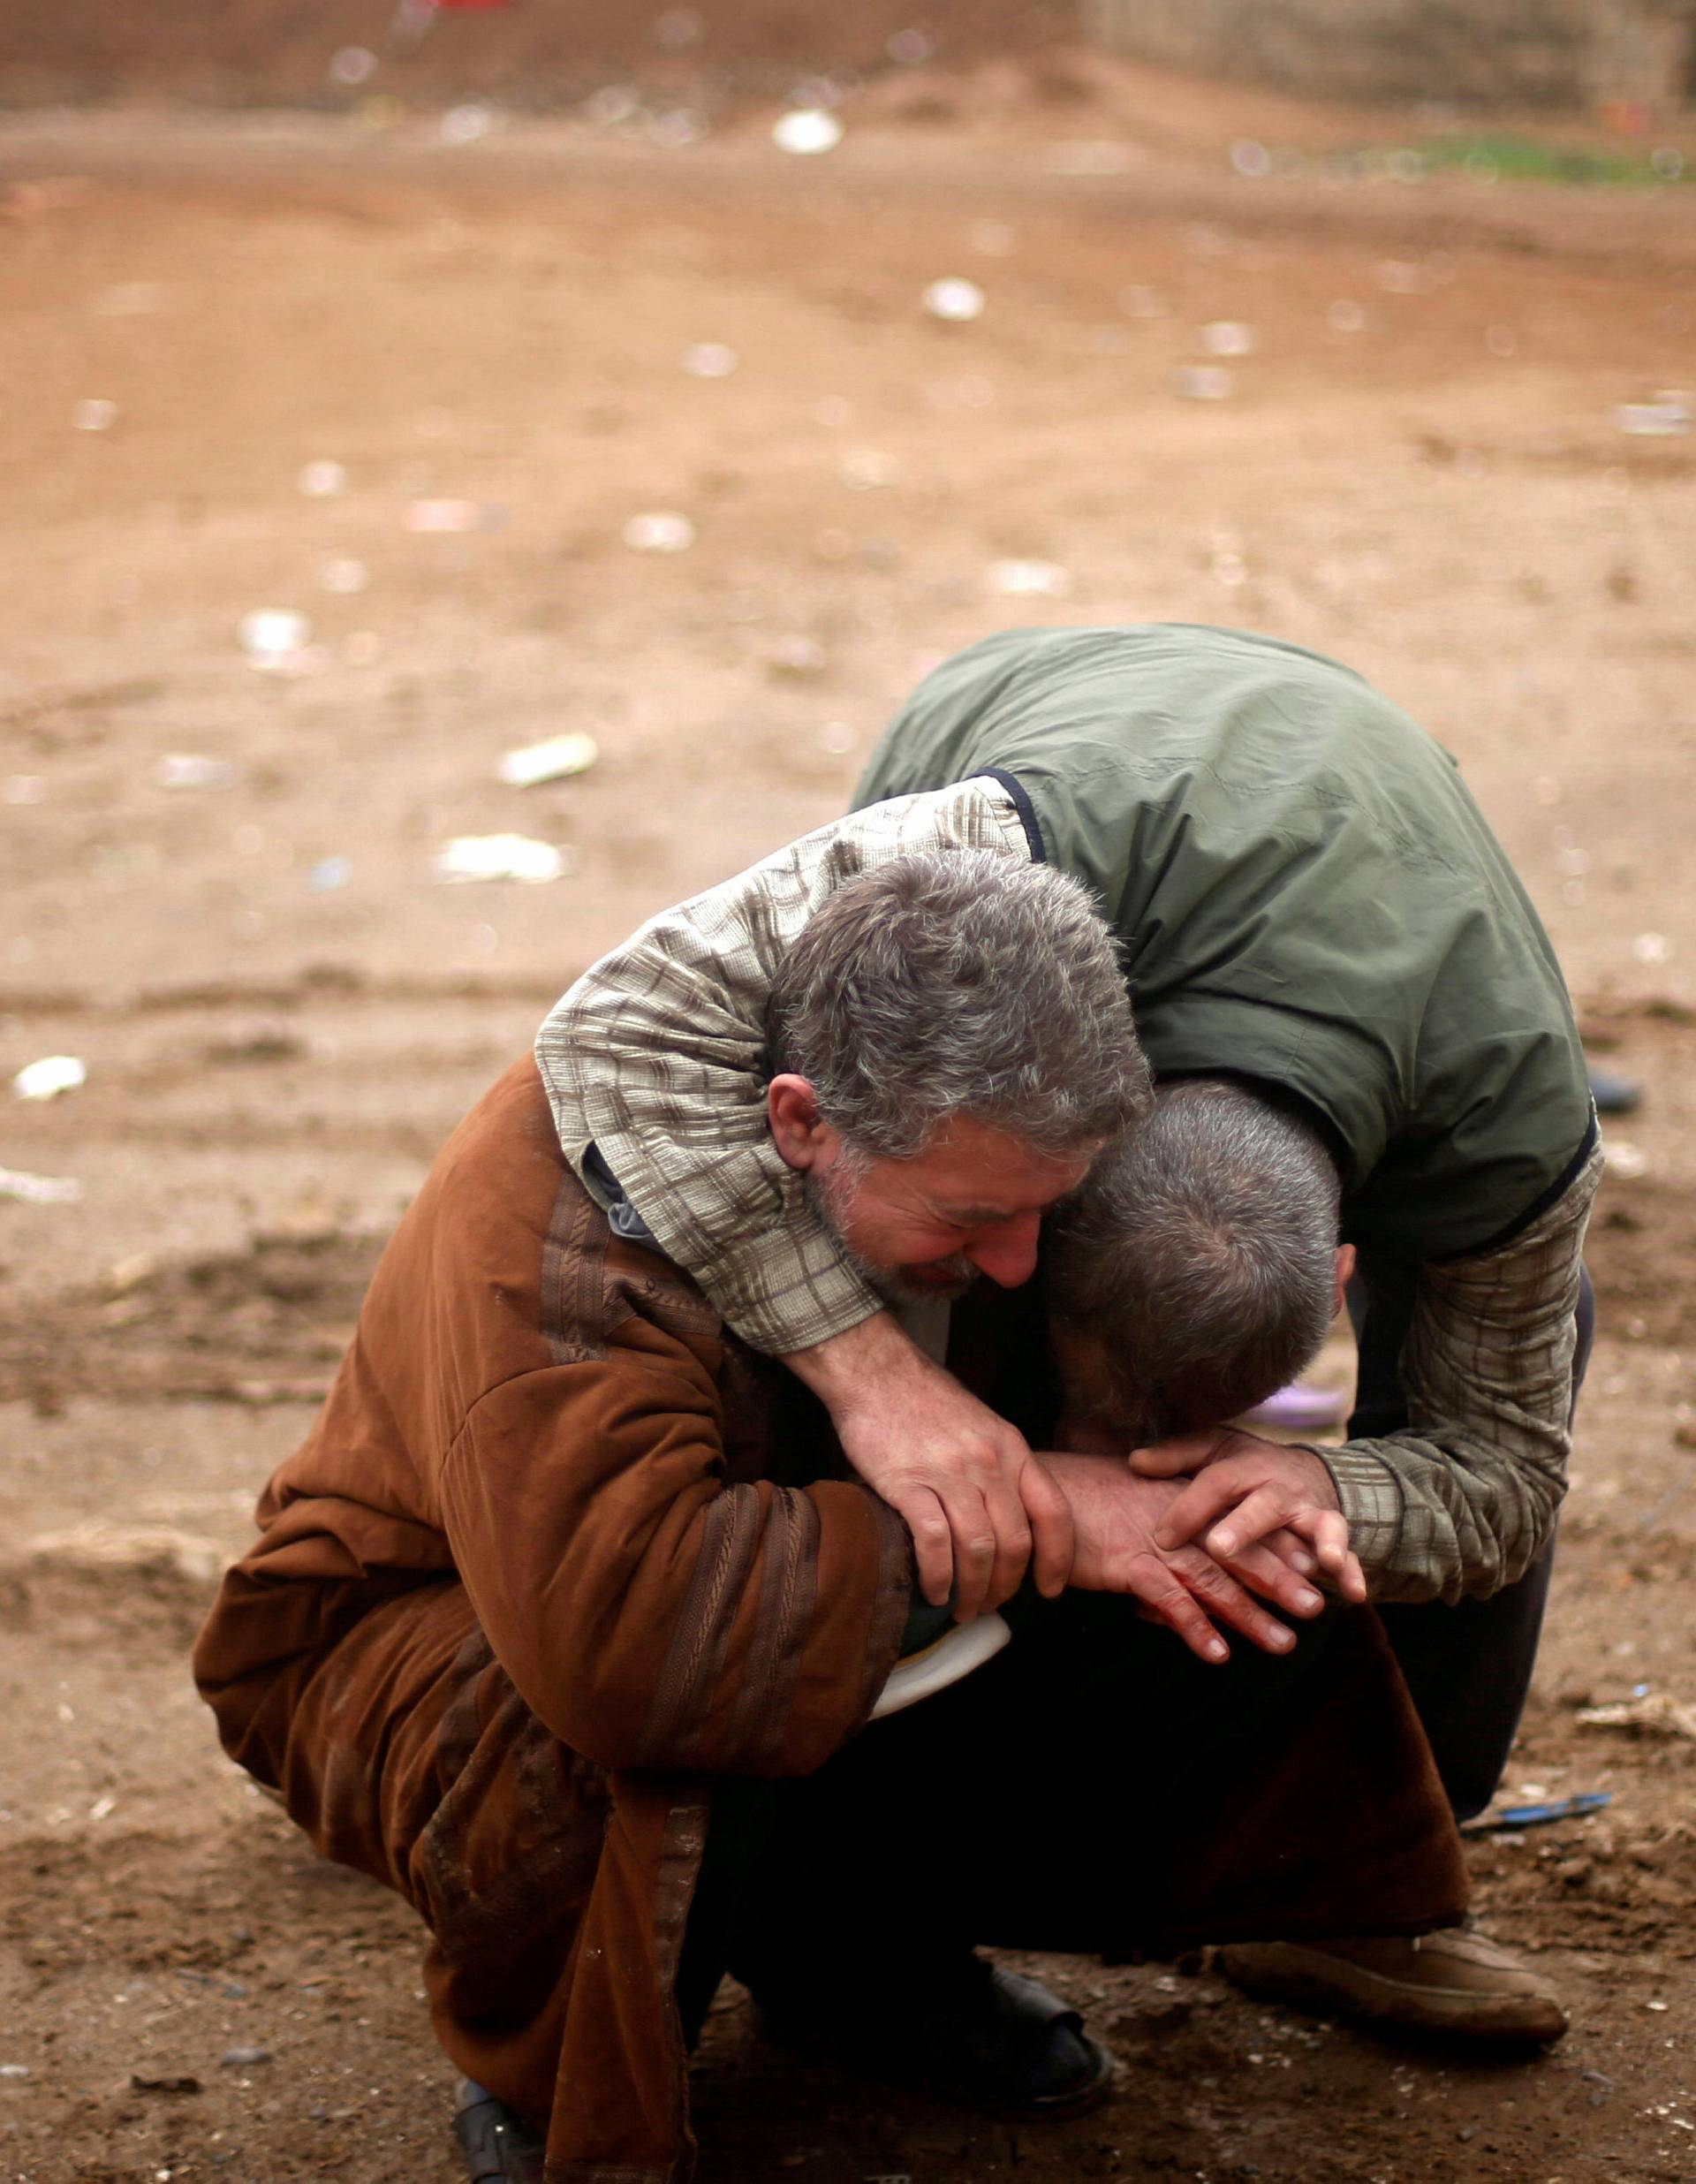 An Iraqi father mourns the death of his son, who was killed during clashes in the Islamic State stronghold of Mosul, in al-Samah neighborhood, Iraq